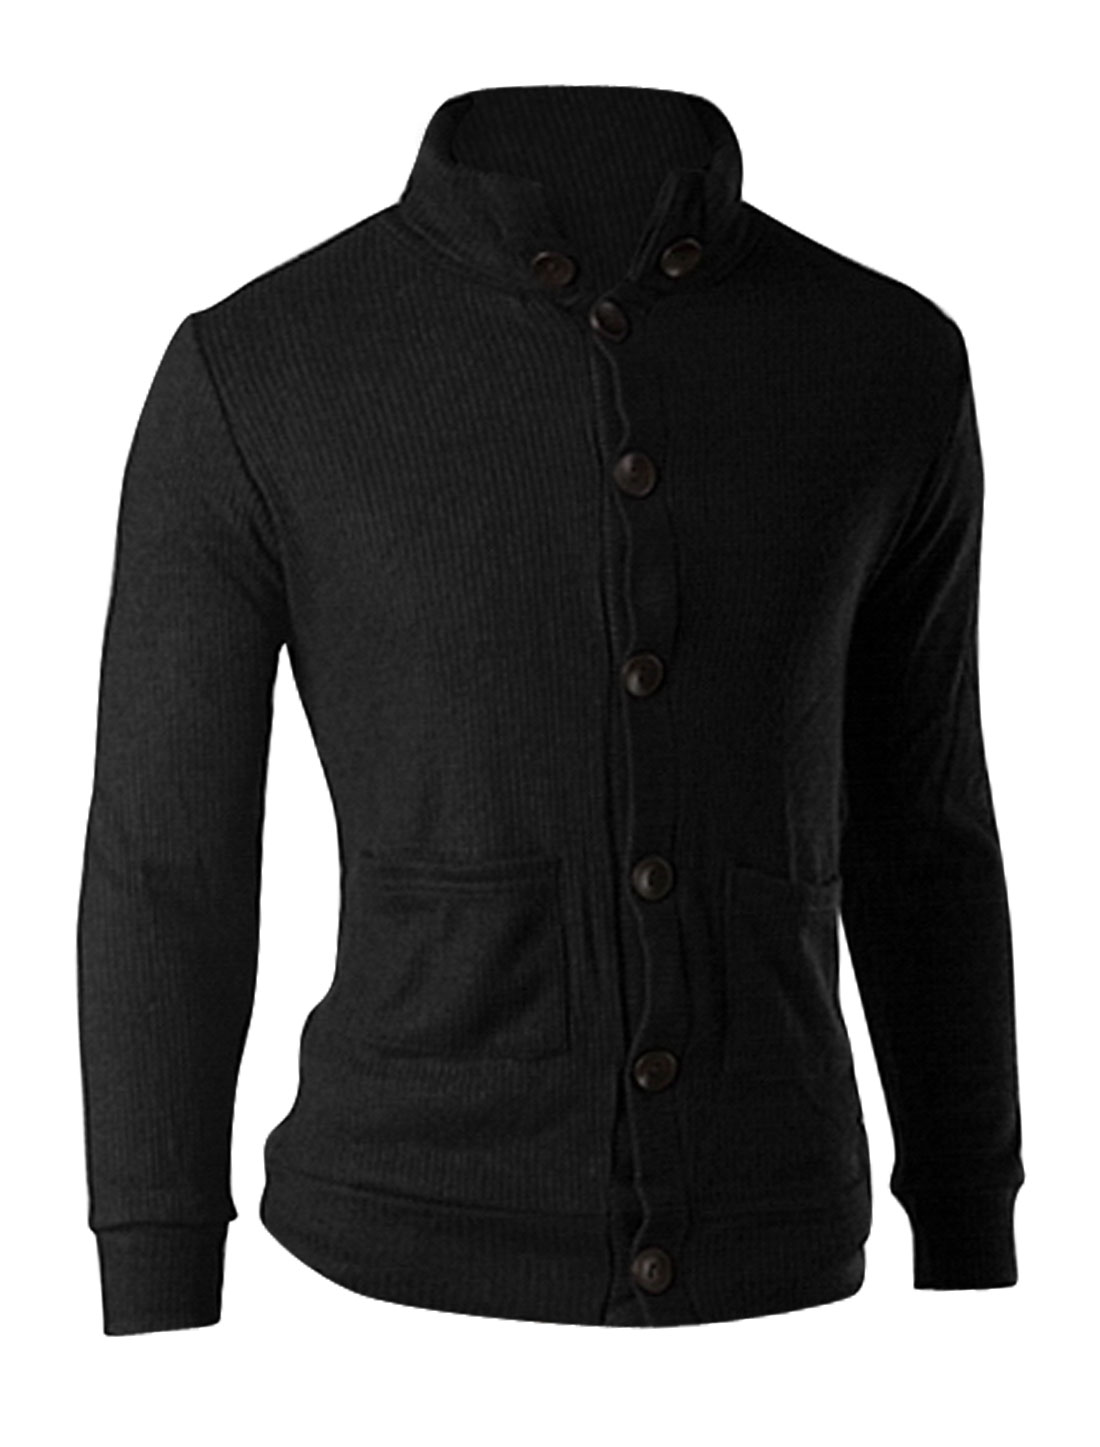 Men Stand Collar Long Sleeve Button Down Chic Knitted Cardigan Black M